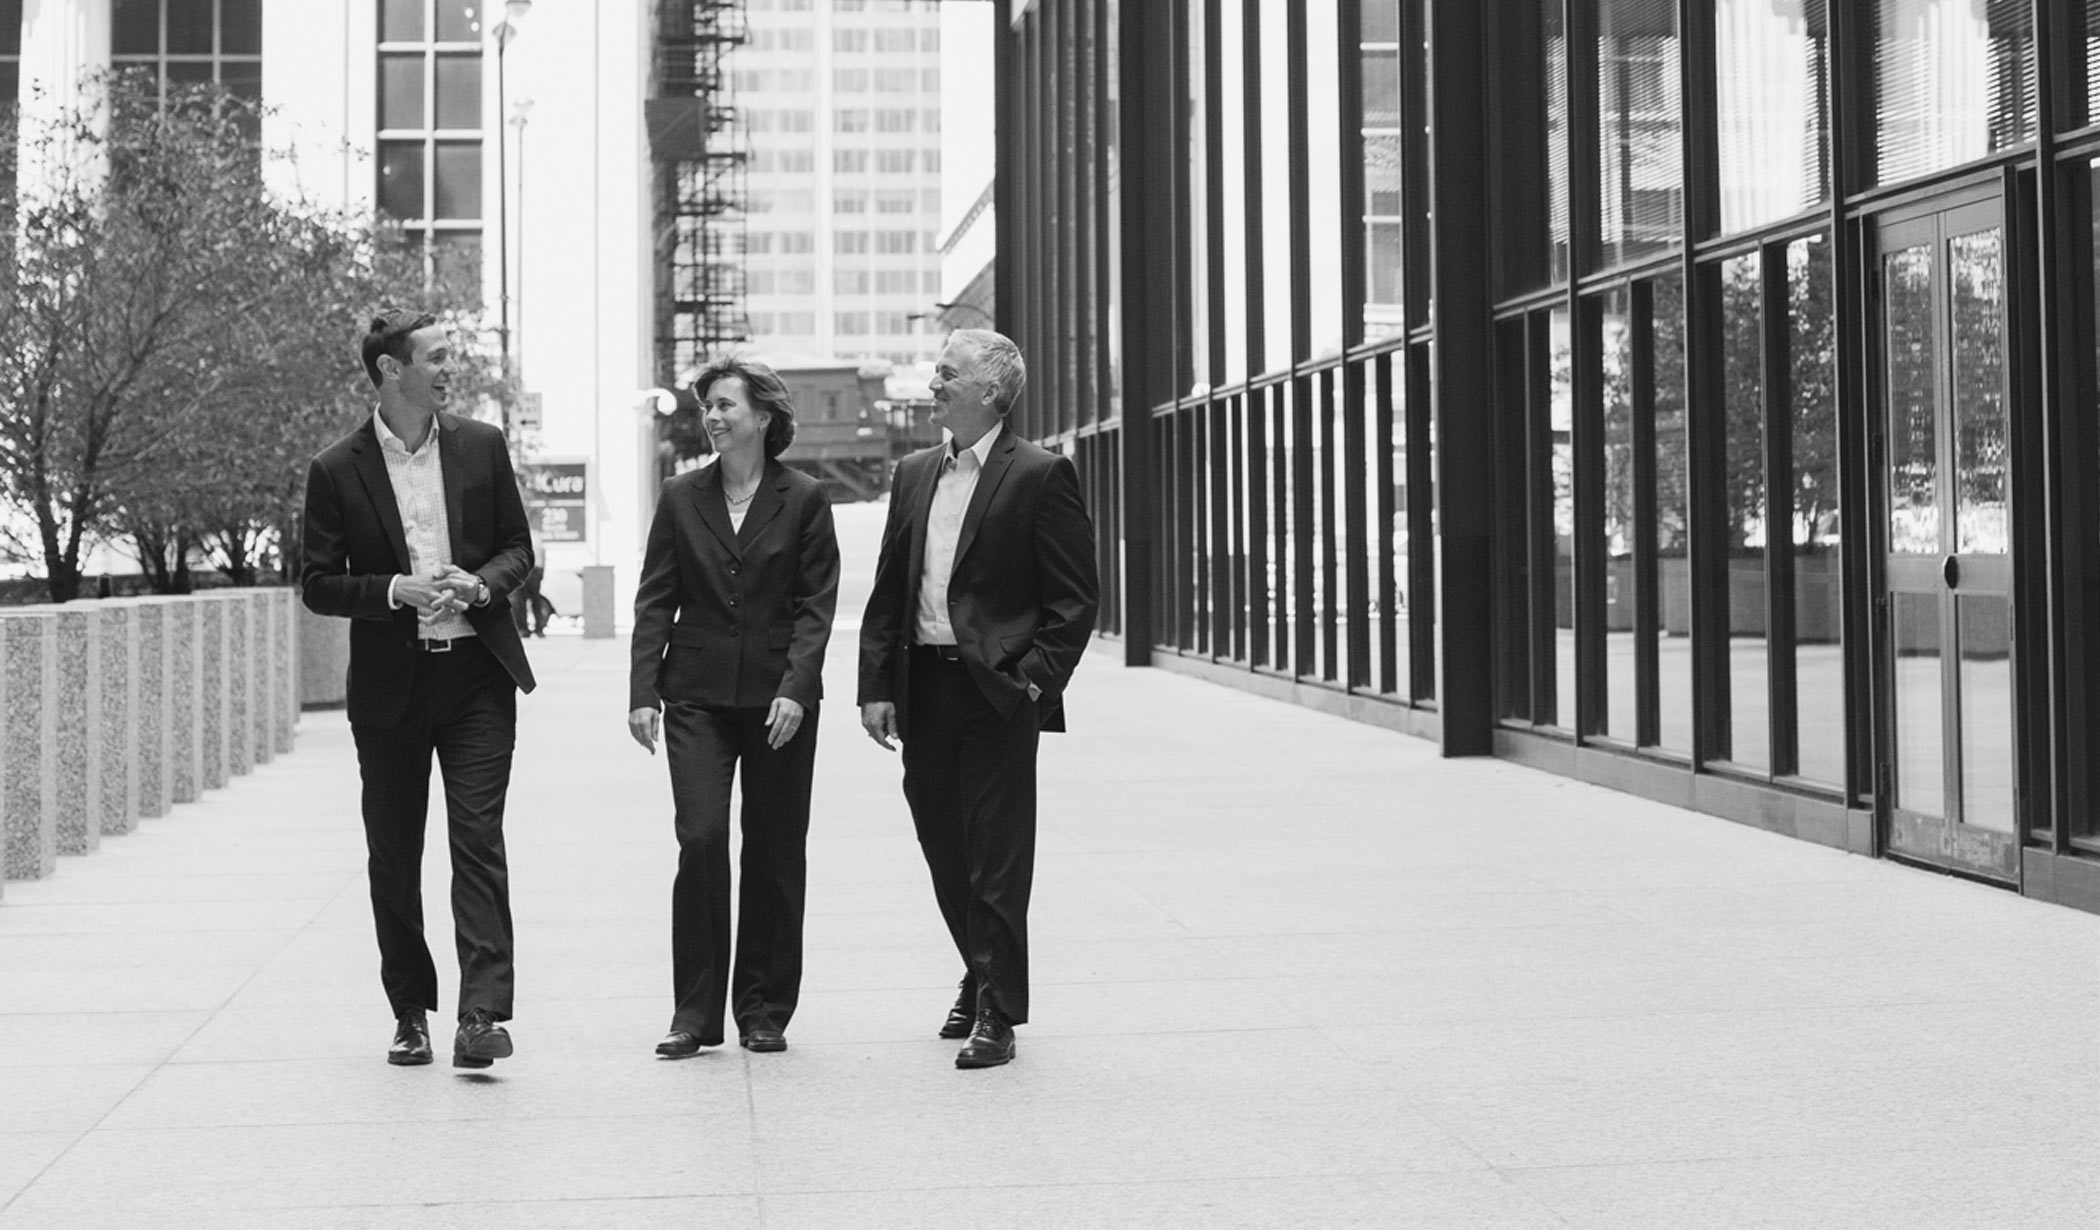 Attorneys Wagenmaker, Oberly, & Winters walking down Chicago street